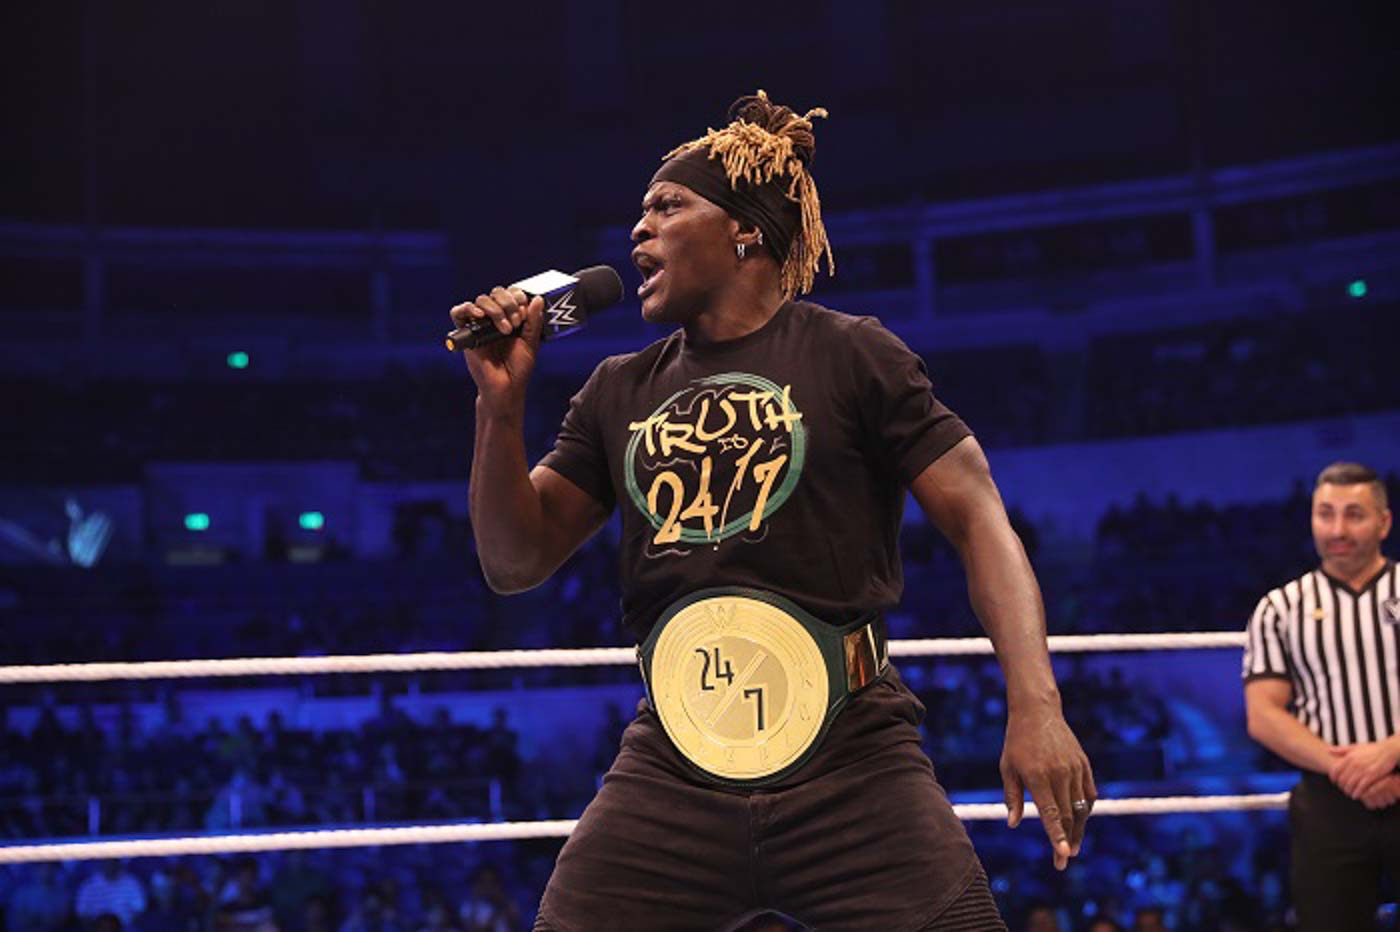 TITLE CHANGE. R-Truth surrenders the WWE 24/7 Championship title to Chad Gable. Photo from release